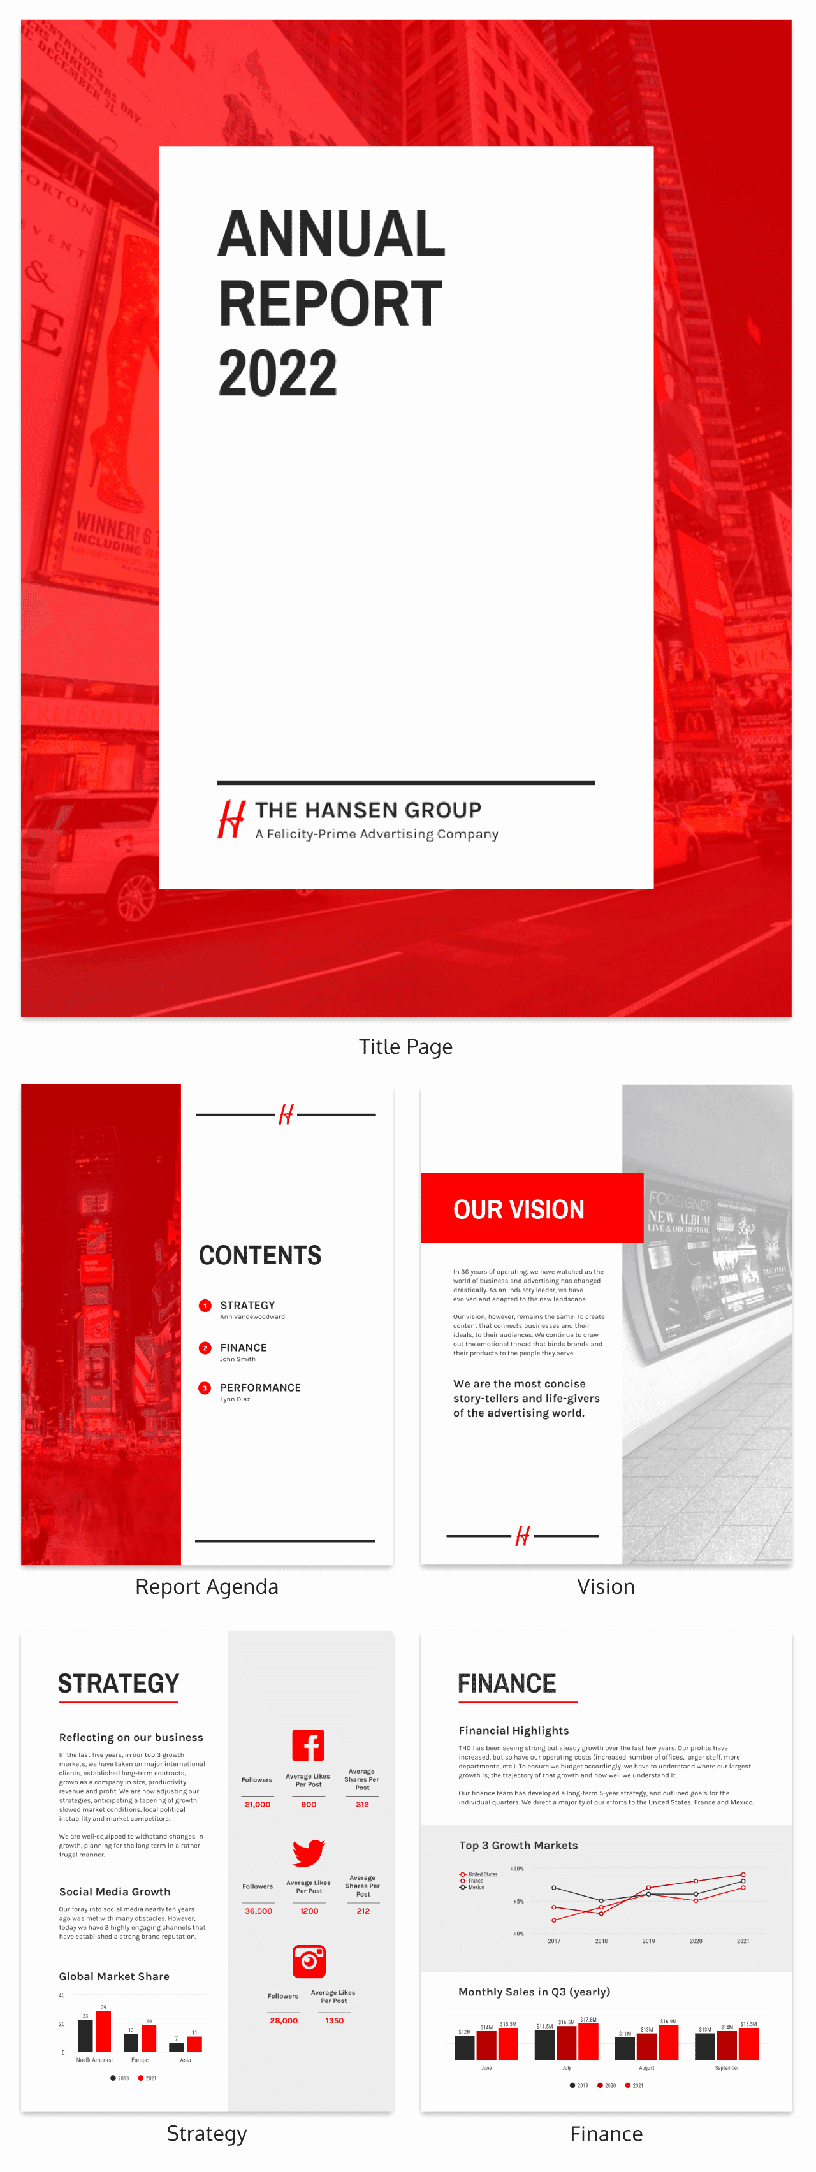 Annual Report Design Template Inspirational 50 Customizable Annual Report Design Templates Examples